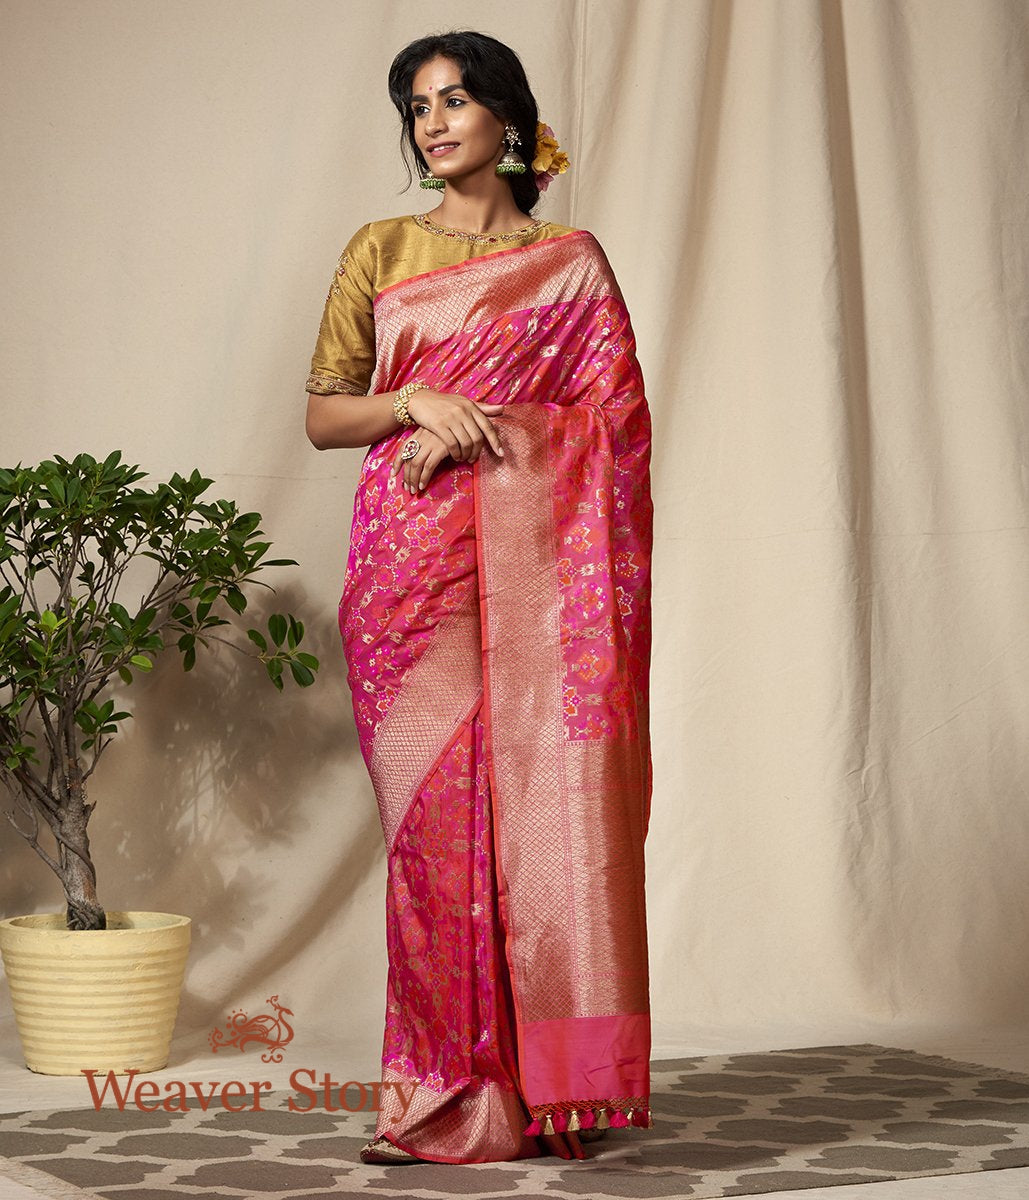 Handwoven Pink and Orange Antique Zari Banarasi Patola Saree